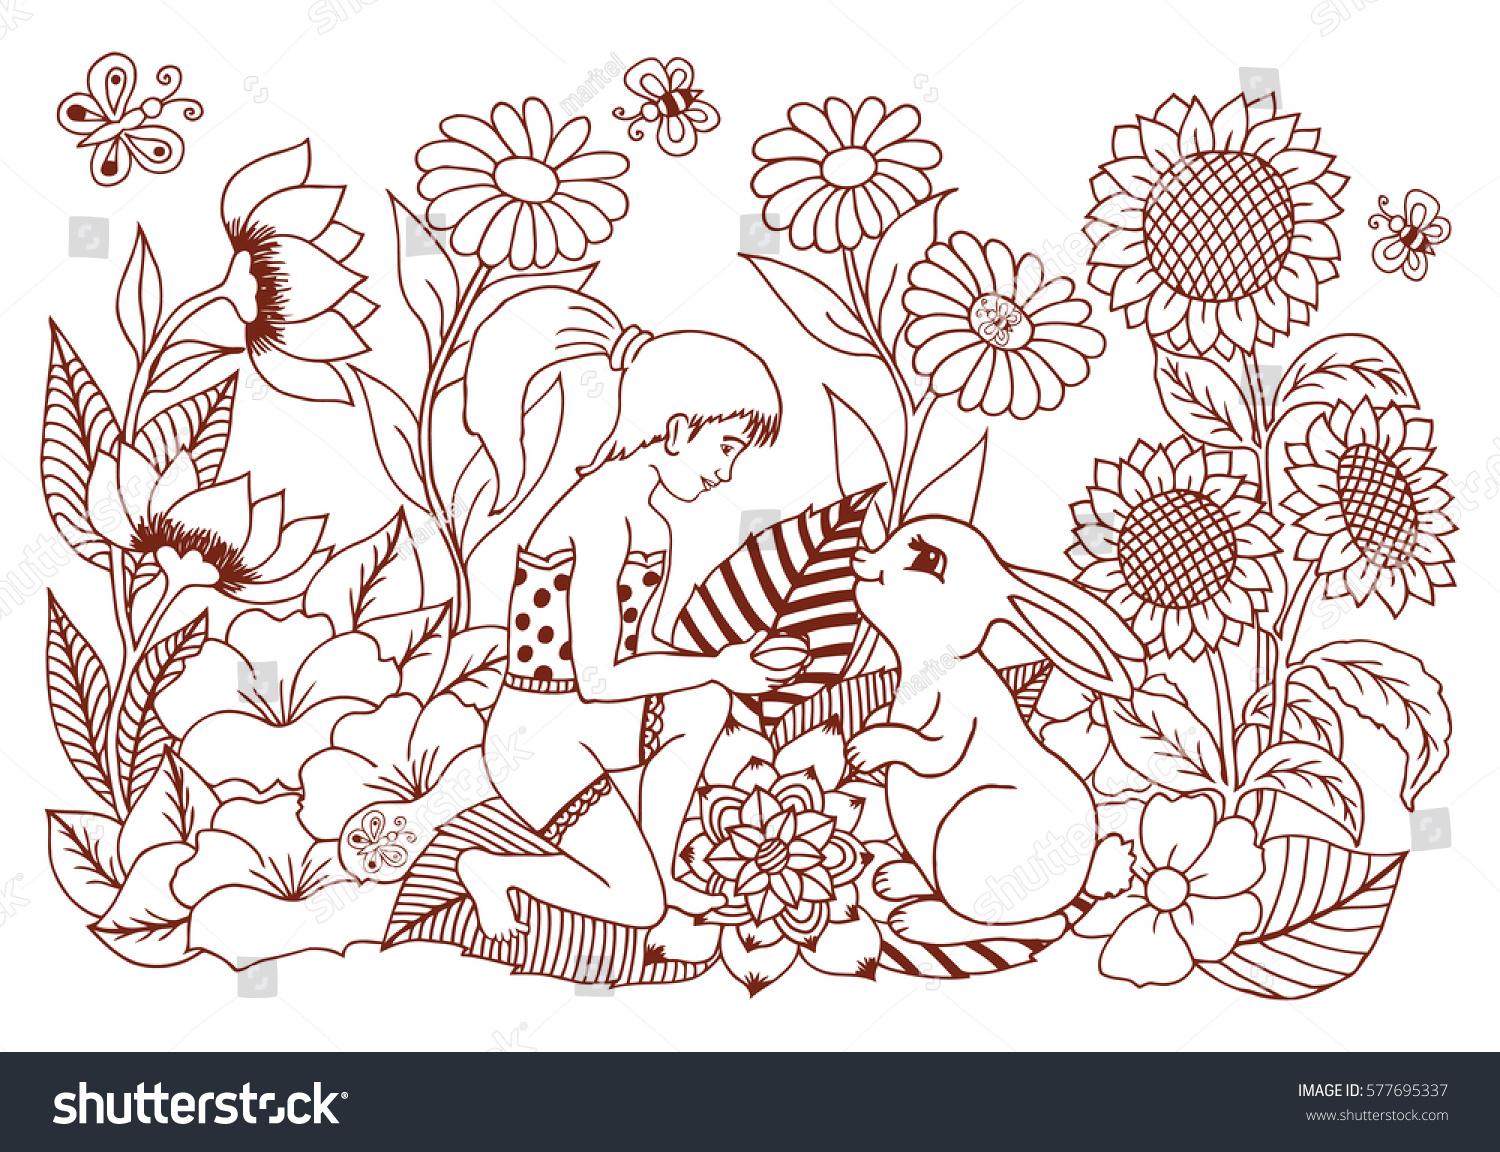 Do anti stress colouring books work - Do Anti Stress Colouring Books Work Vector Illustration A Girl In Flowers With The Bunny